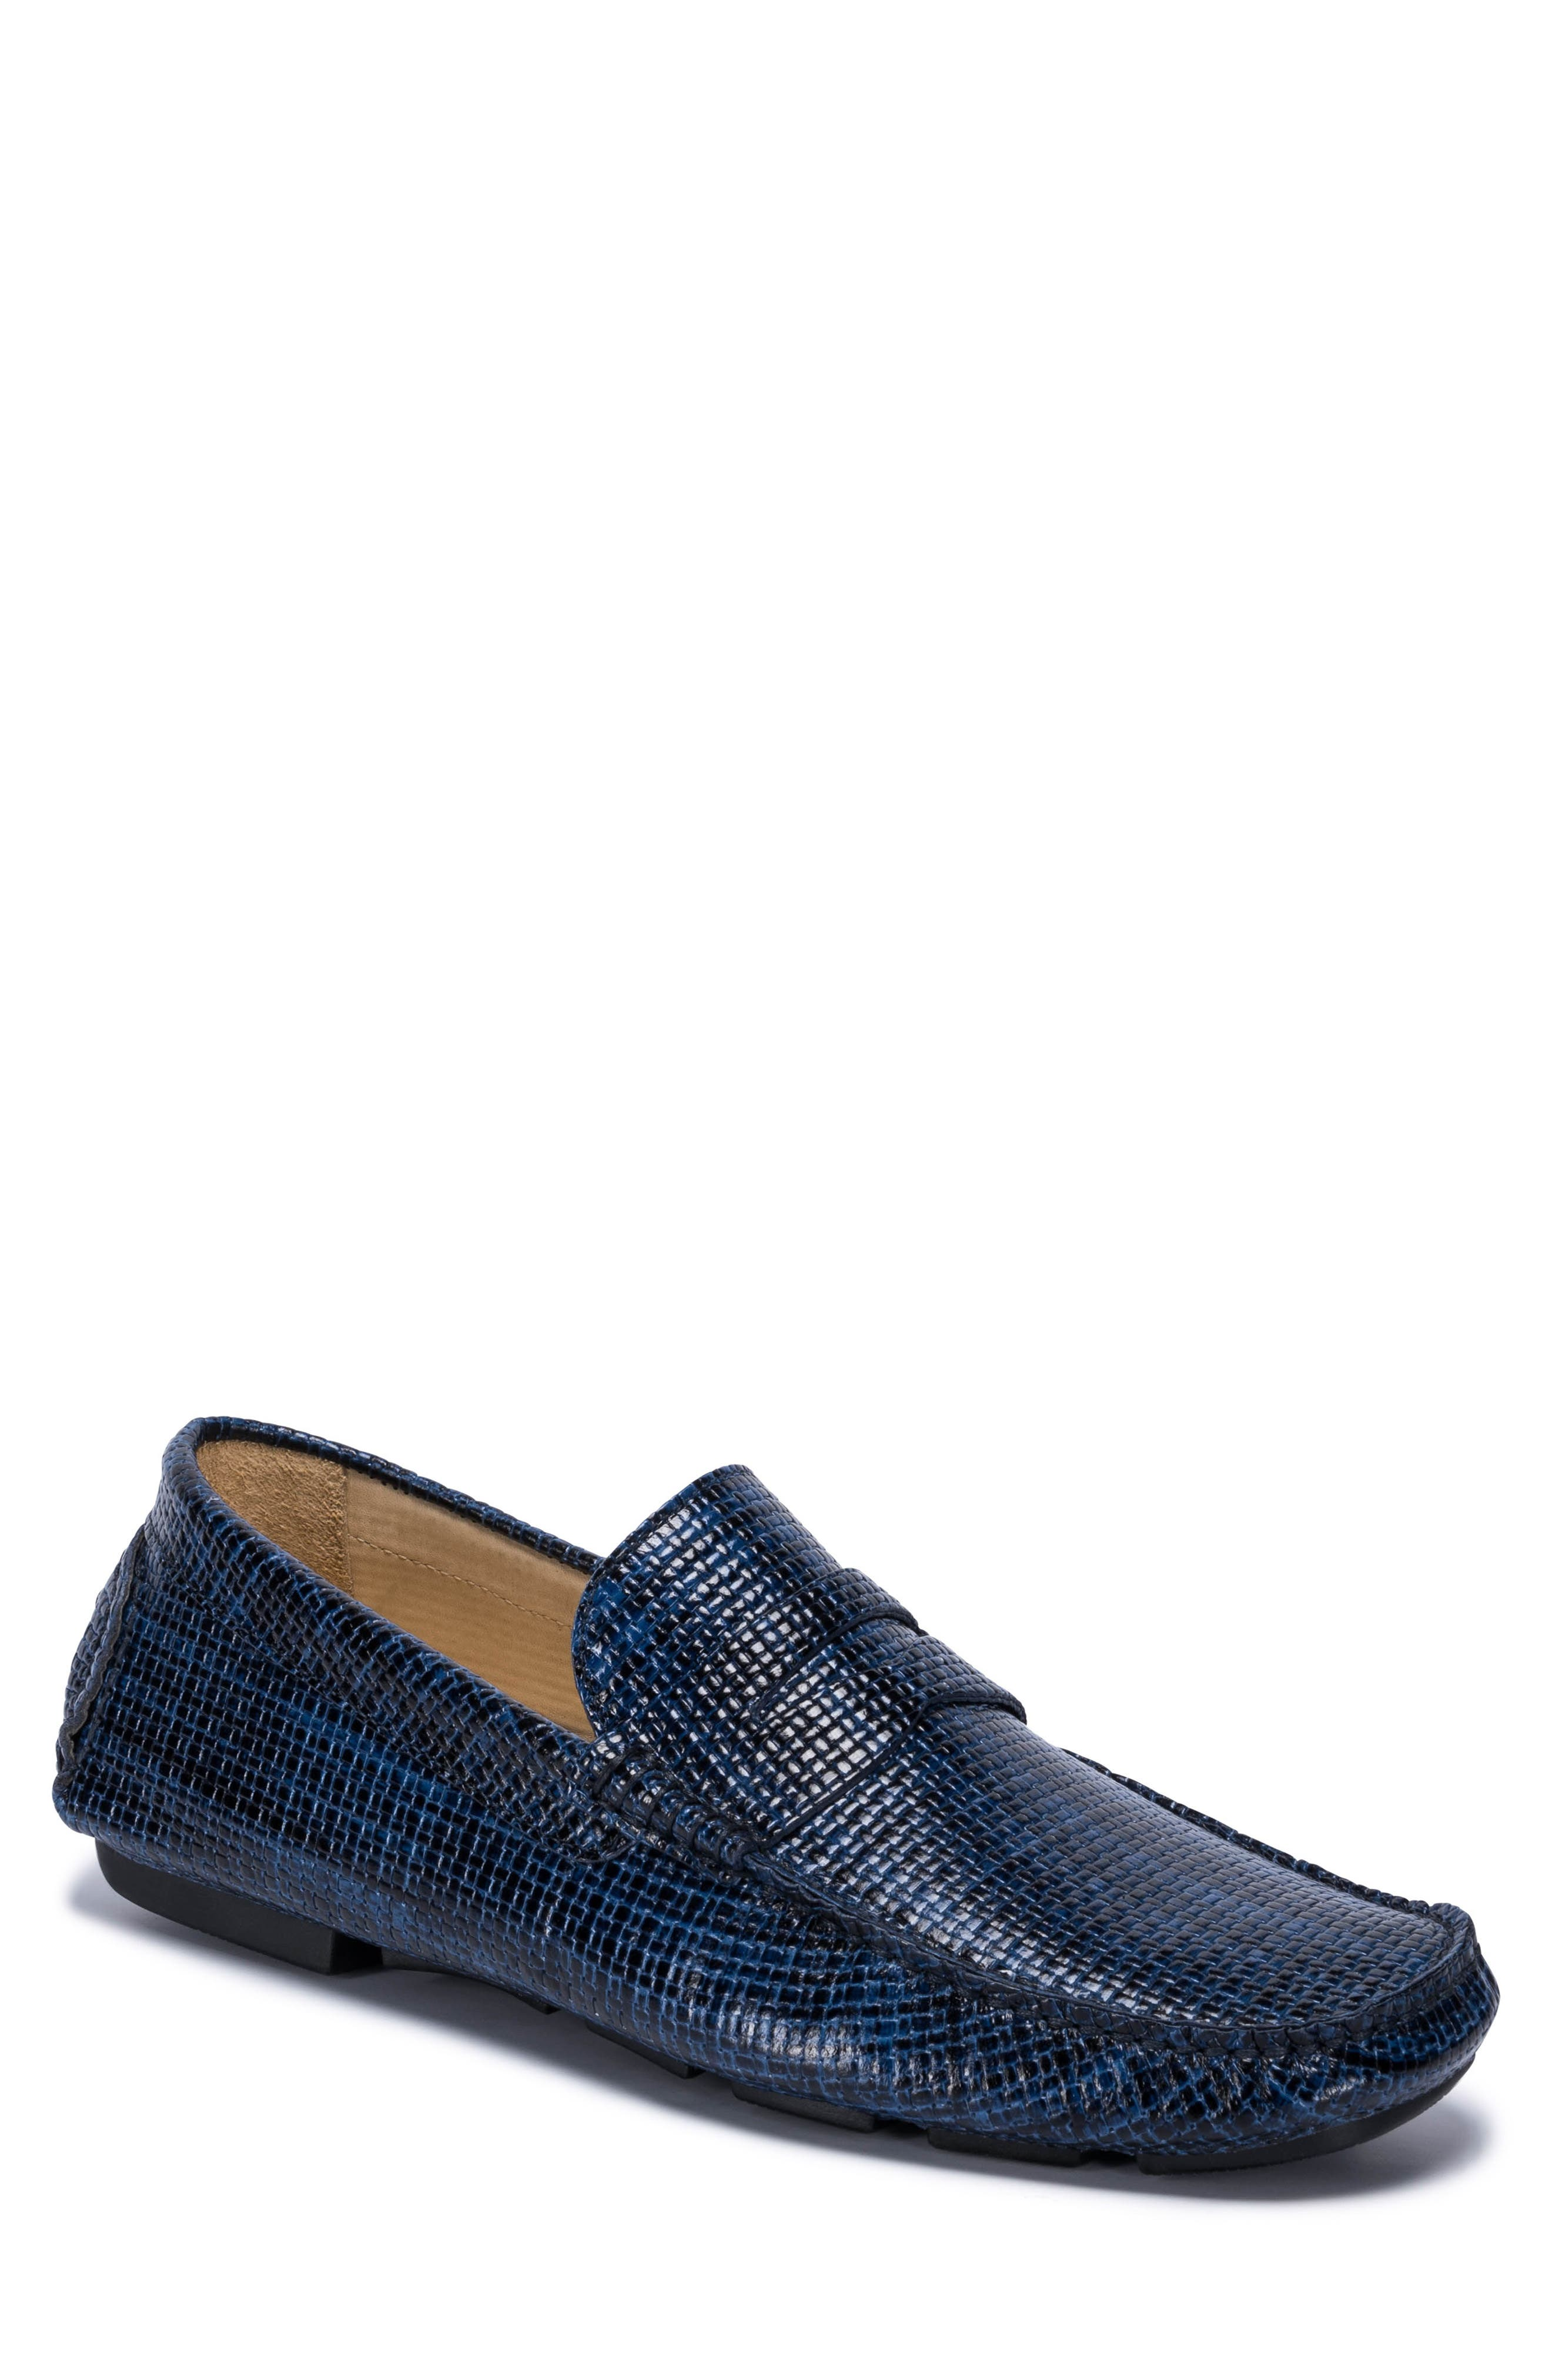 Montalcino Driving Penny Loafer,                         Main,                         color, Blue Leather